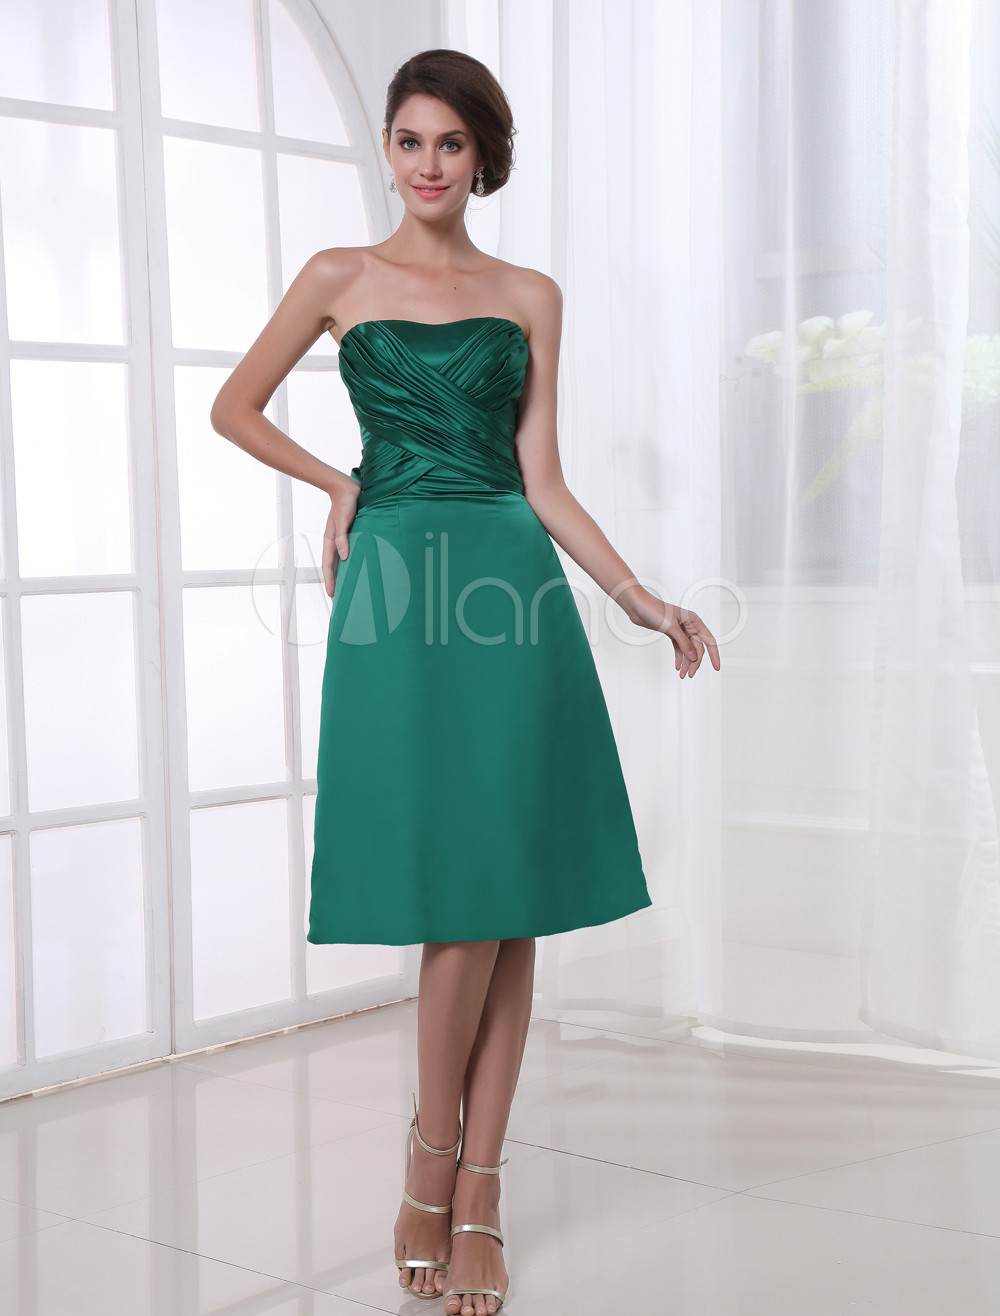 A-line Hunter Green Satin Bow Strapless Knee-Length Fashion Bridesmaid Dress